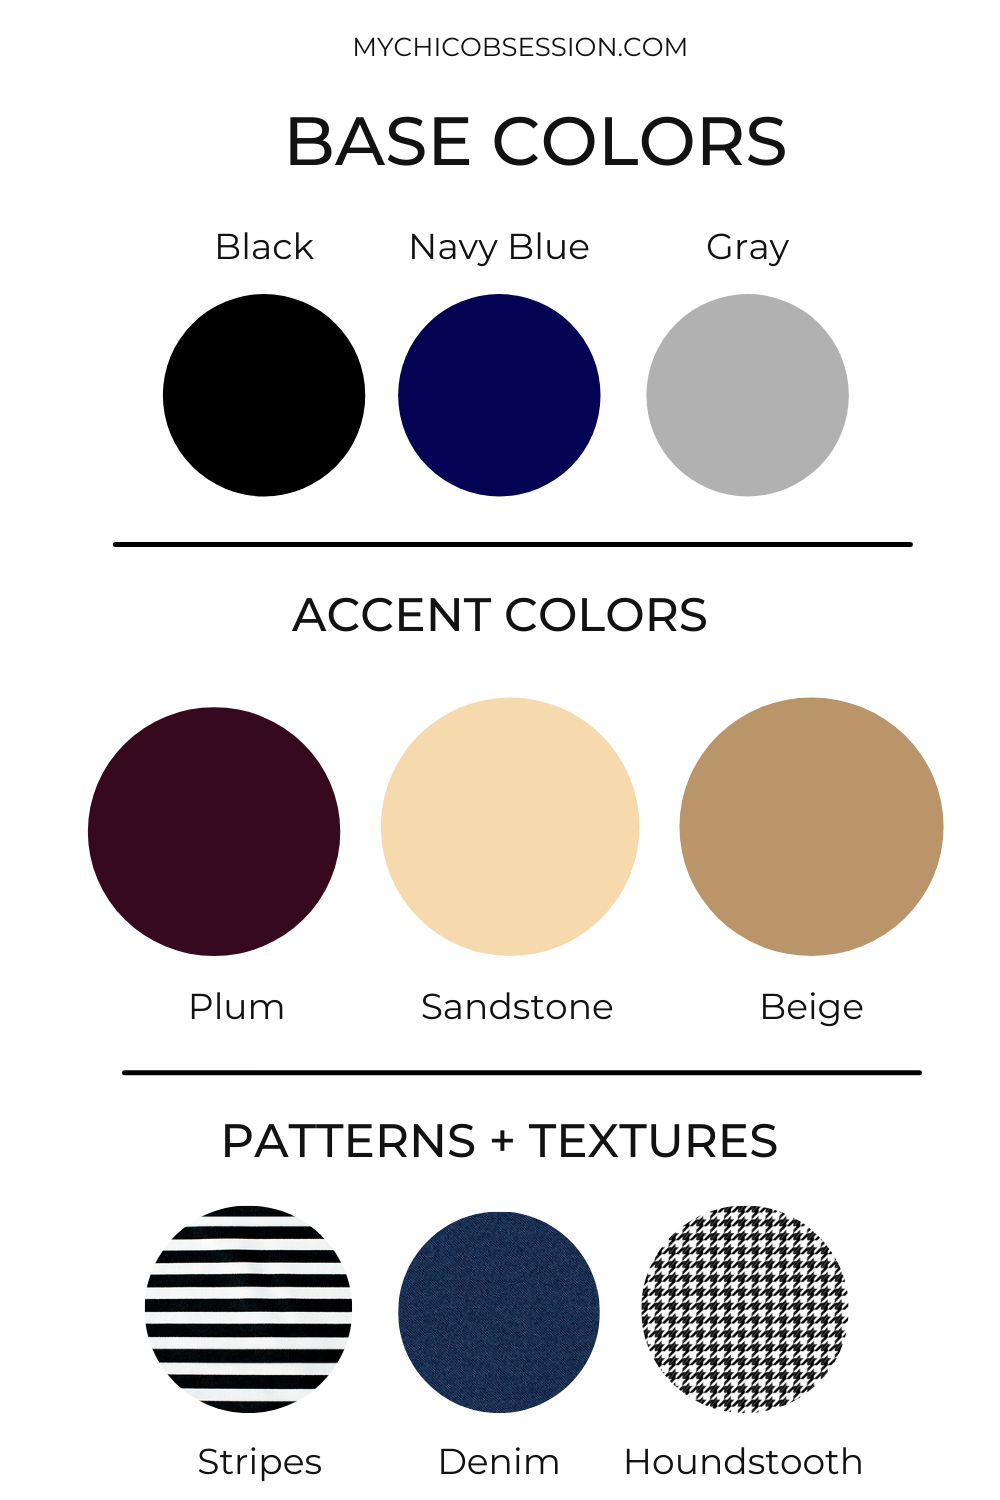 An example of a capsule wardrobe base color and accent colors